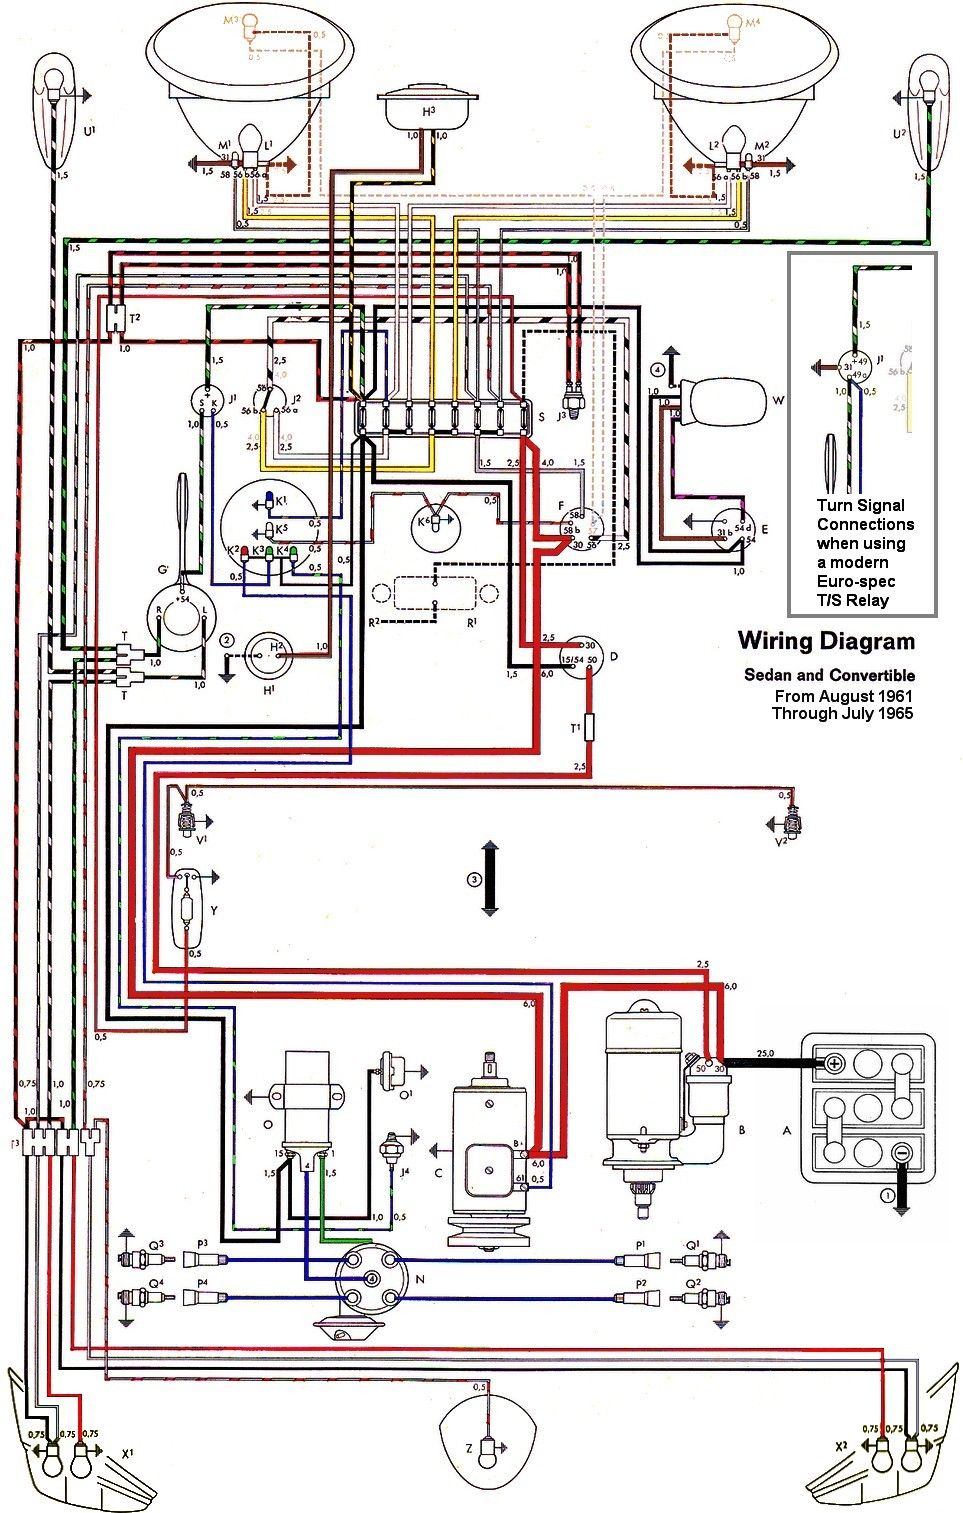 wiring diagram vw beetle sedan and convertible 1961 1965 vw rh pinterest com 1966 VW Beetle Wiring Diagram 64 vw beetle wiring diagram